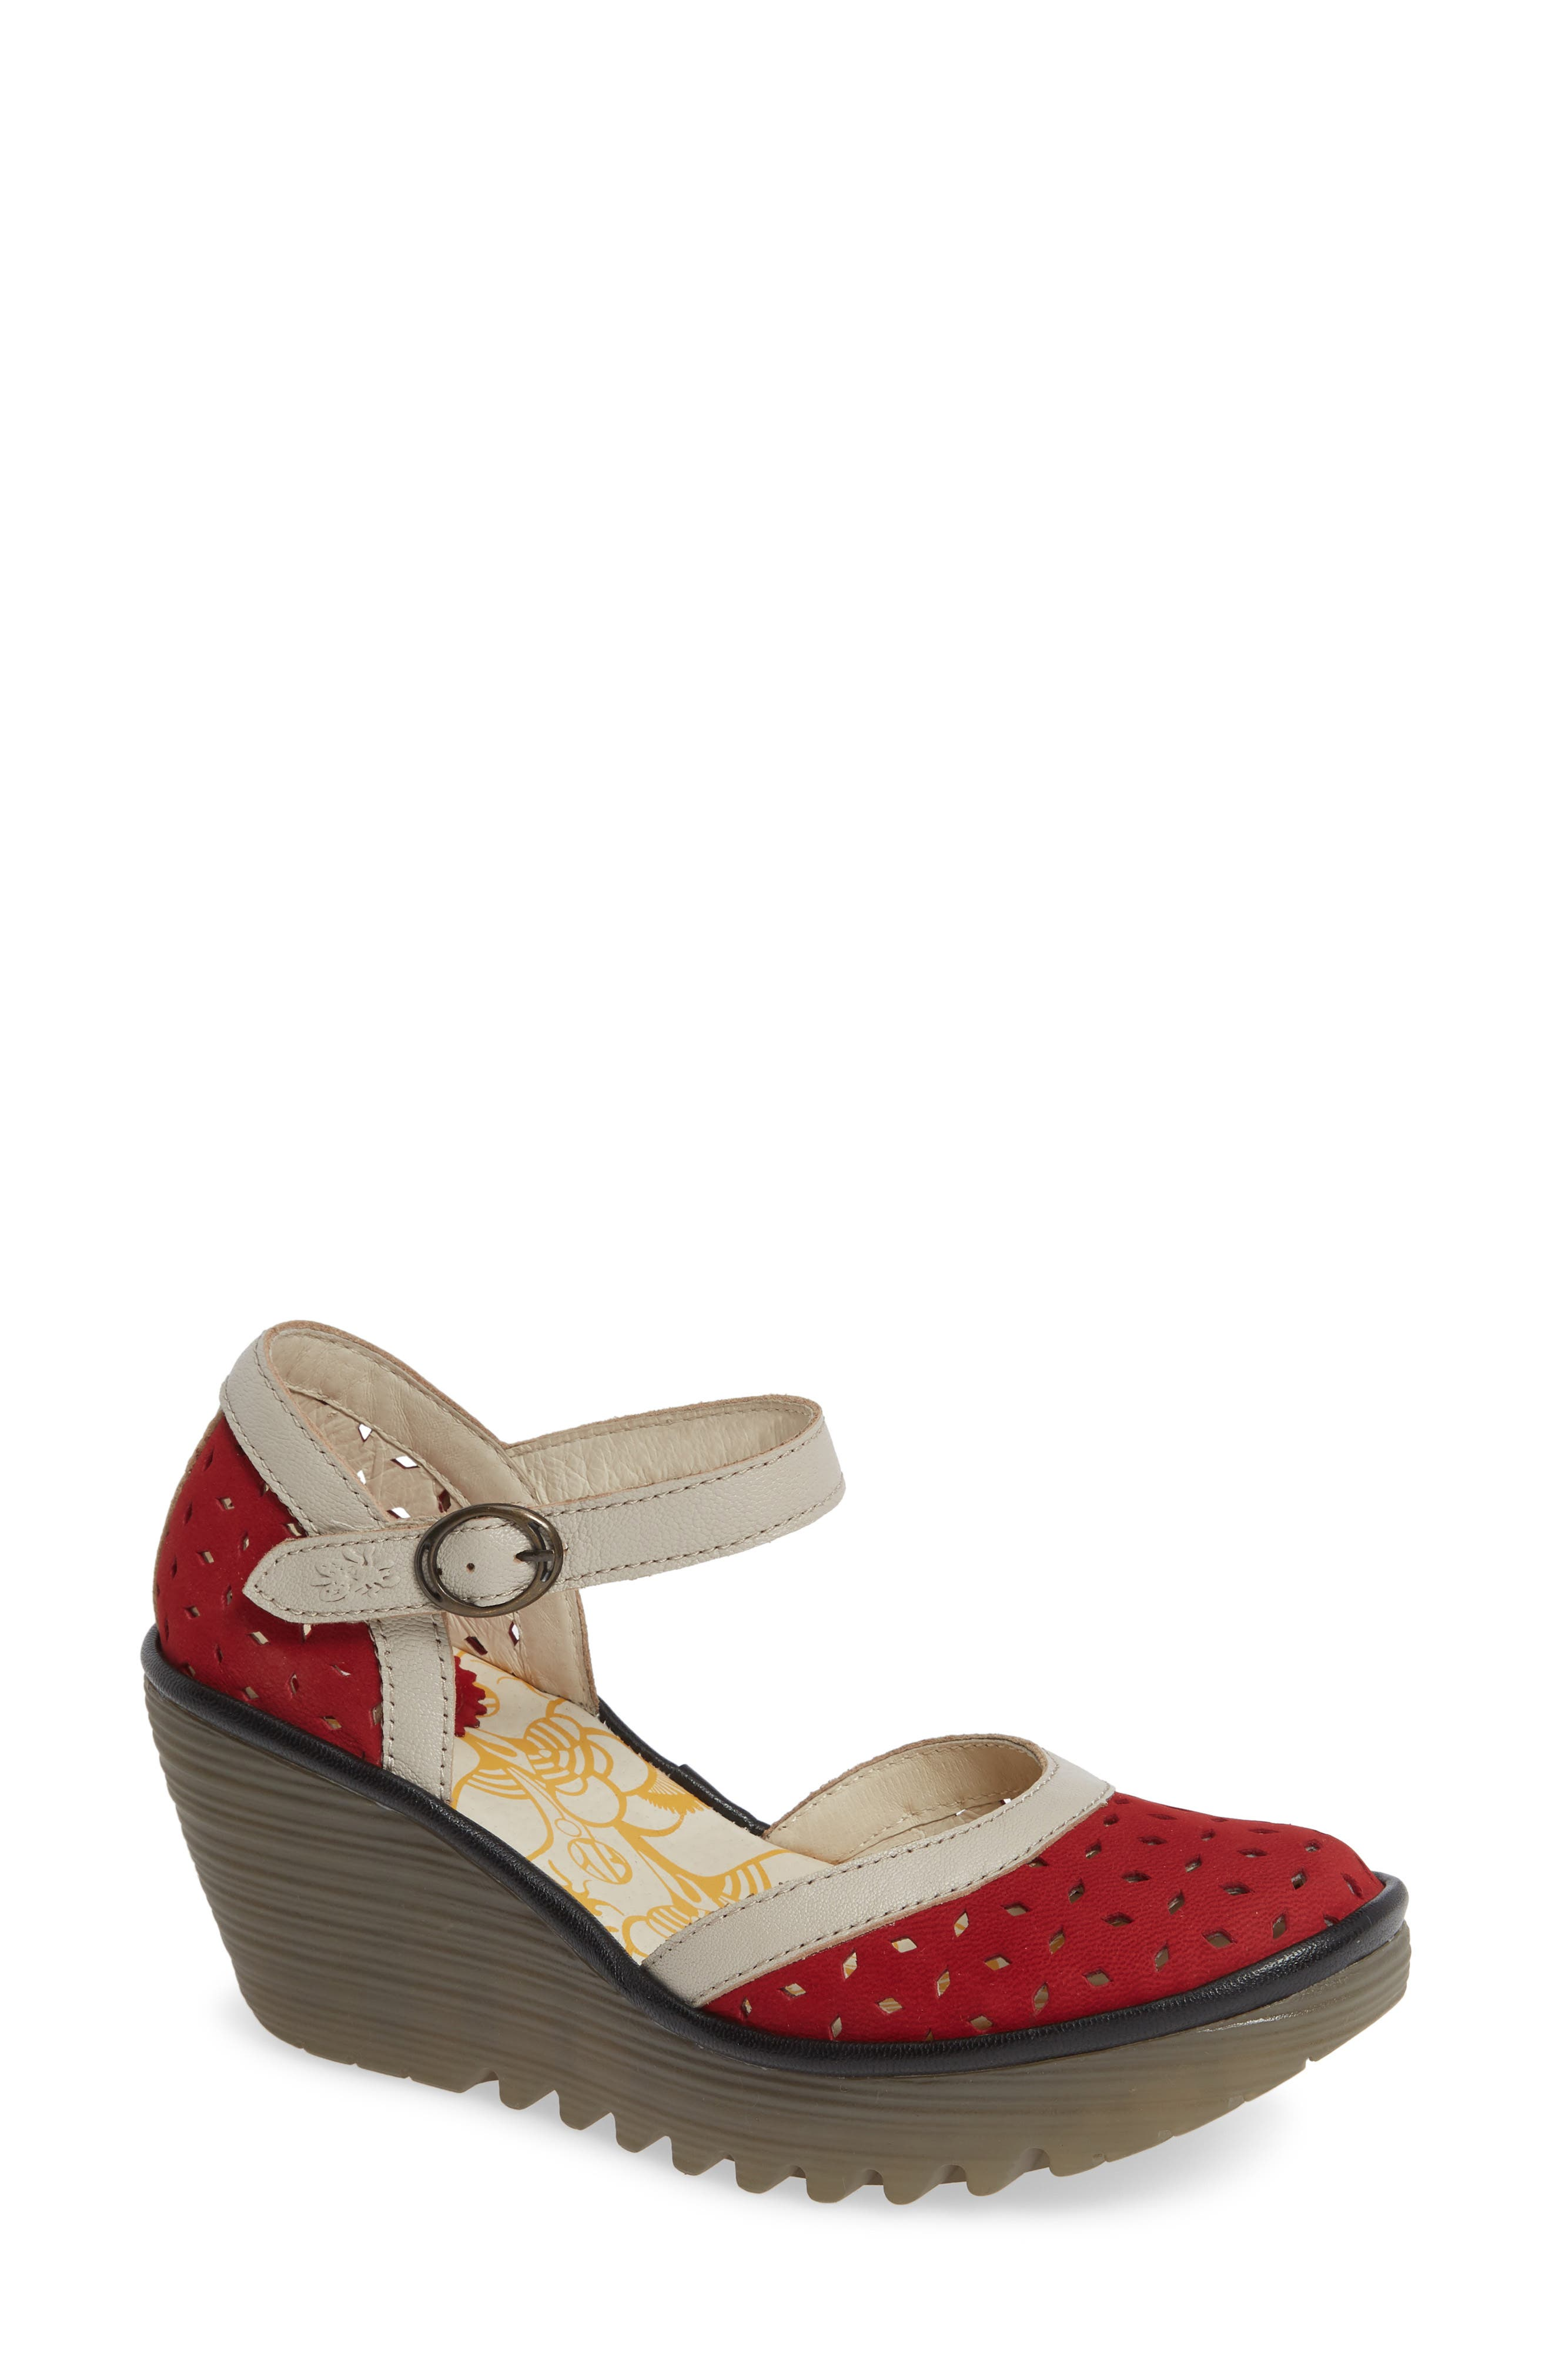 Fly London Yven Wedge, Red